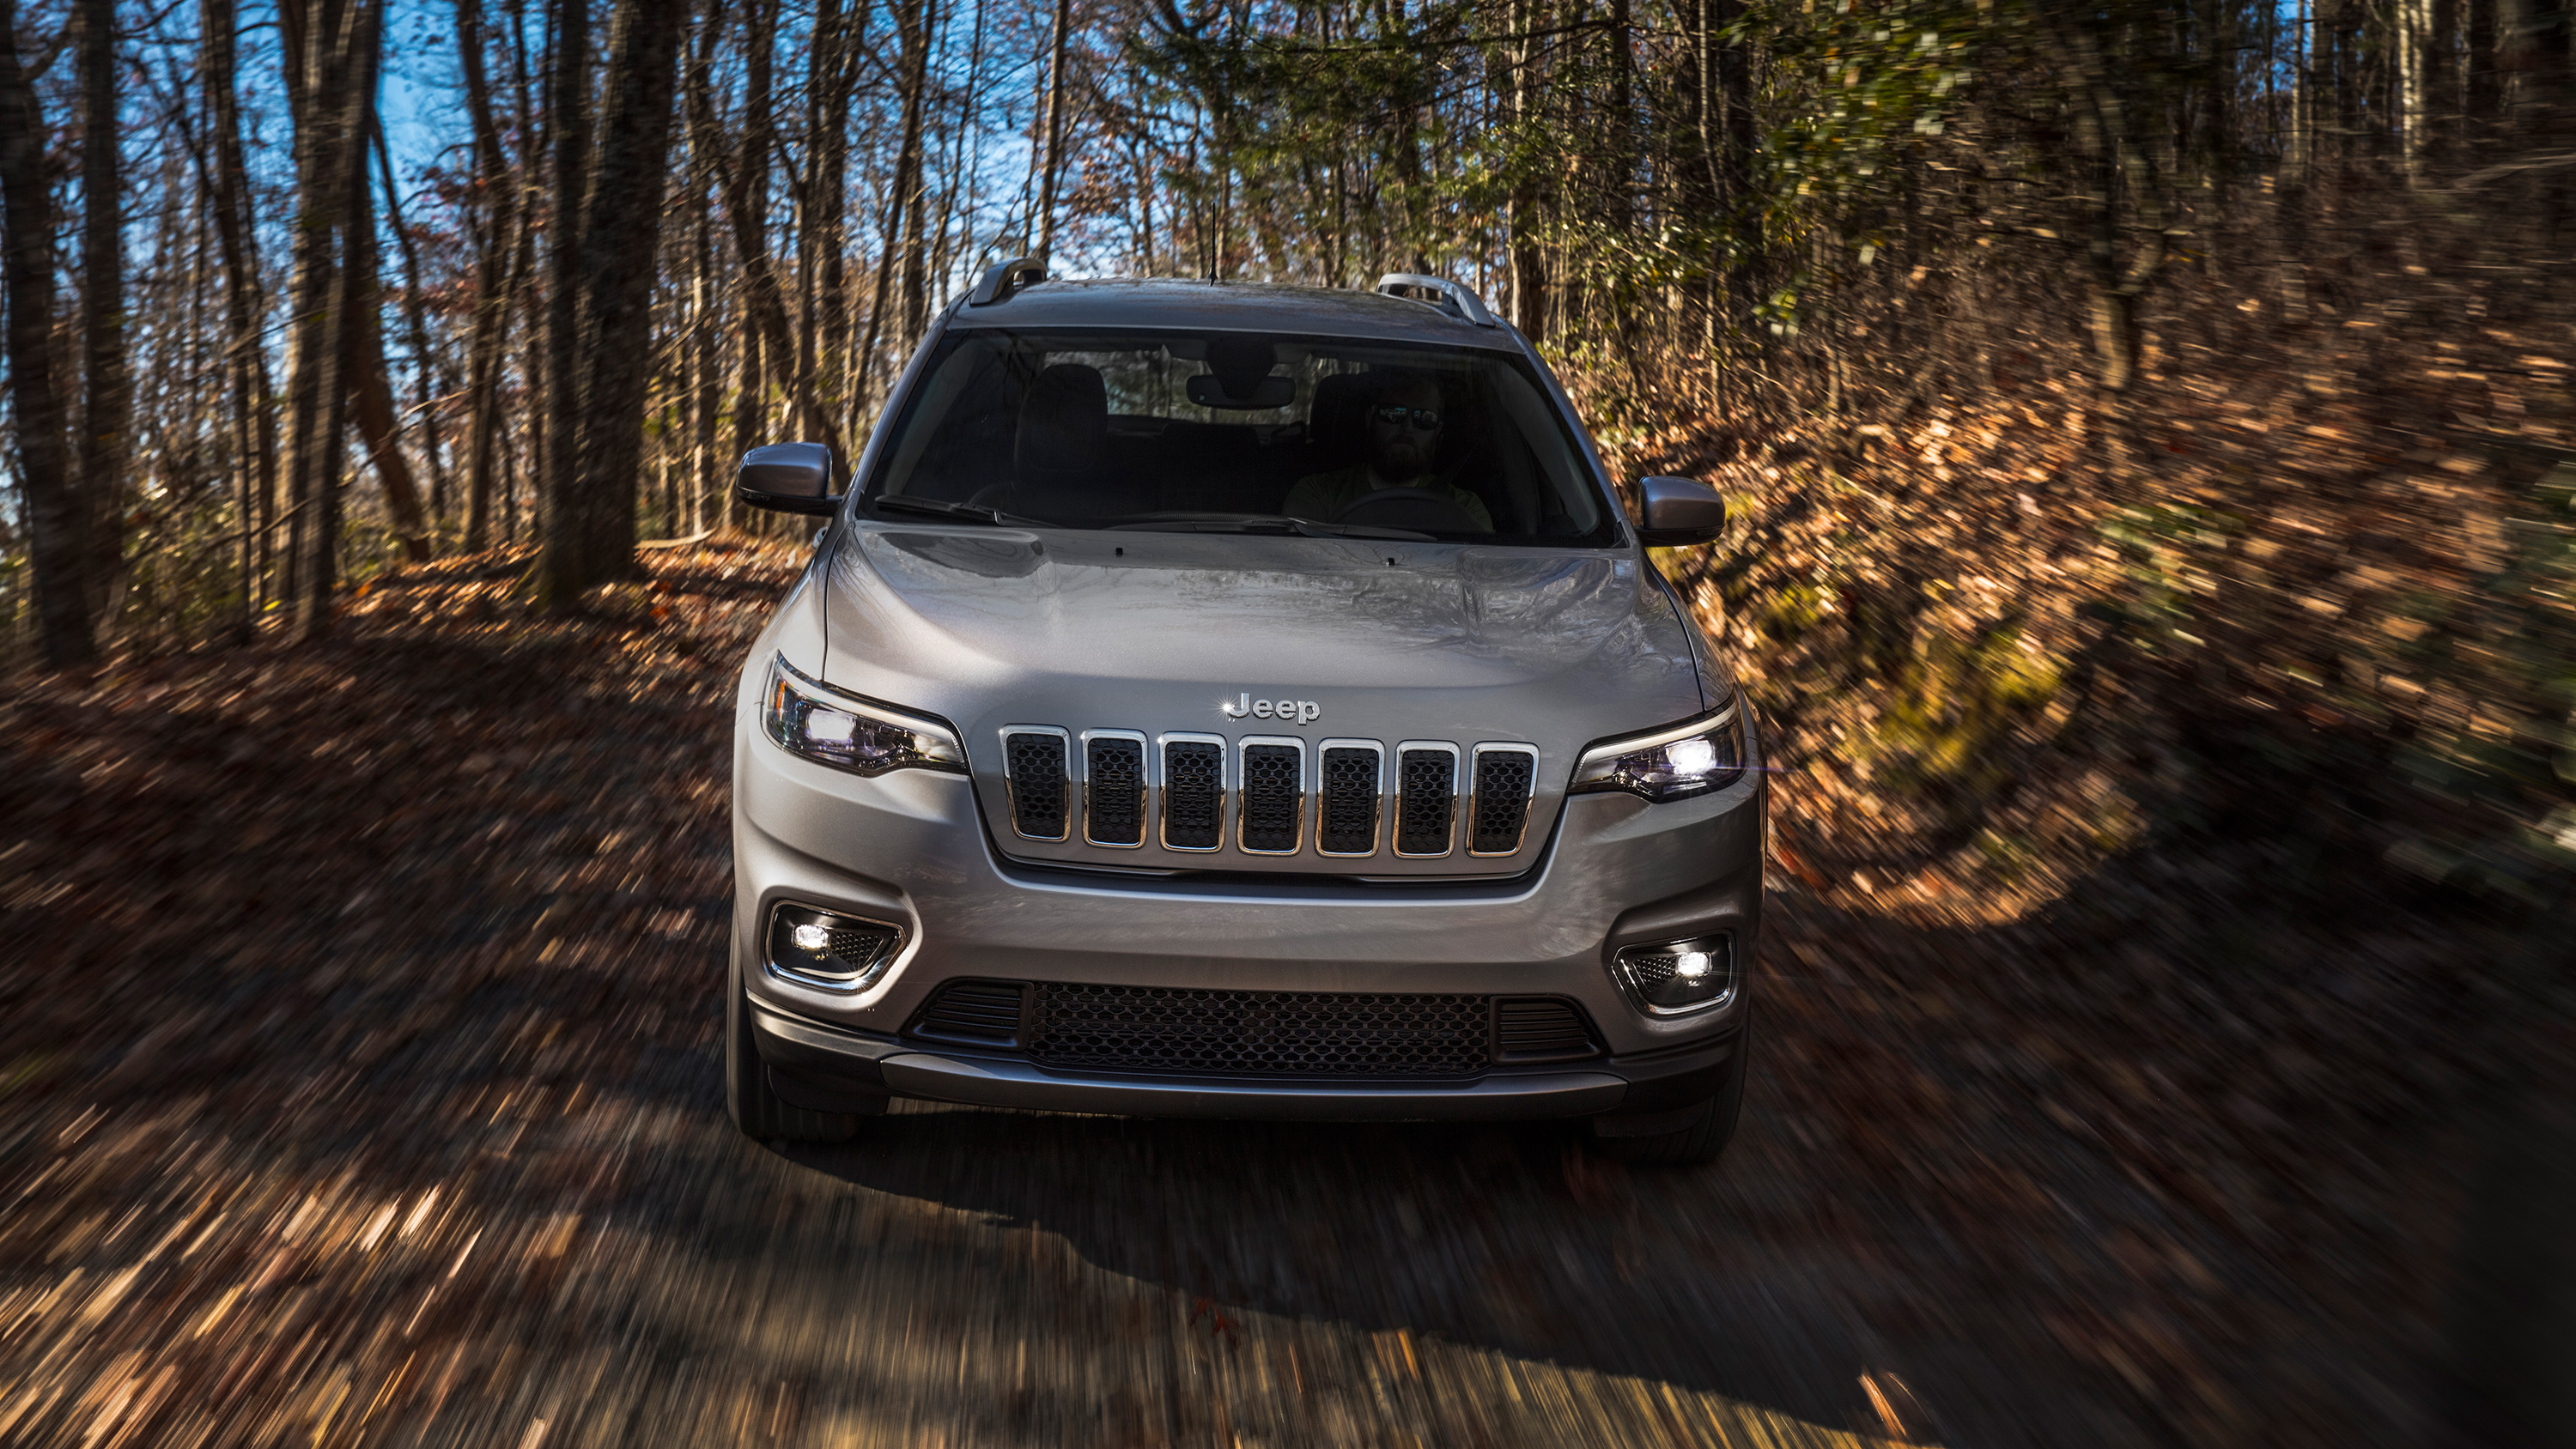 2019 Jeep Cherokee Limited Wallpaper HD Car Wallpapers ID 9414 3000x1688